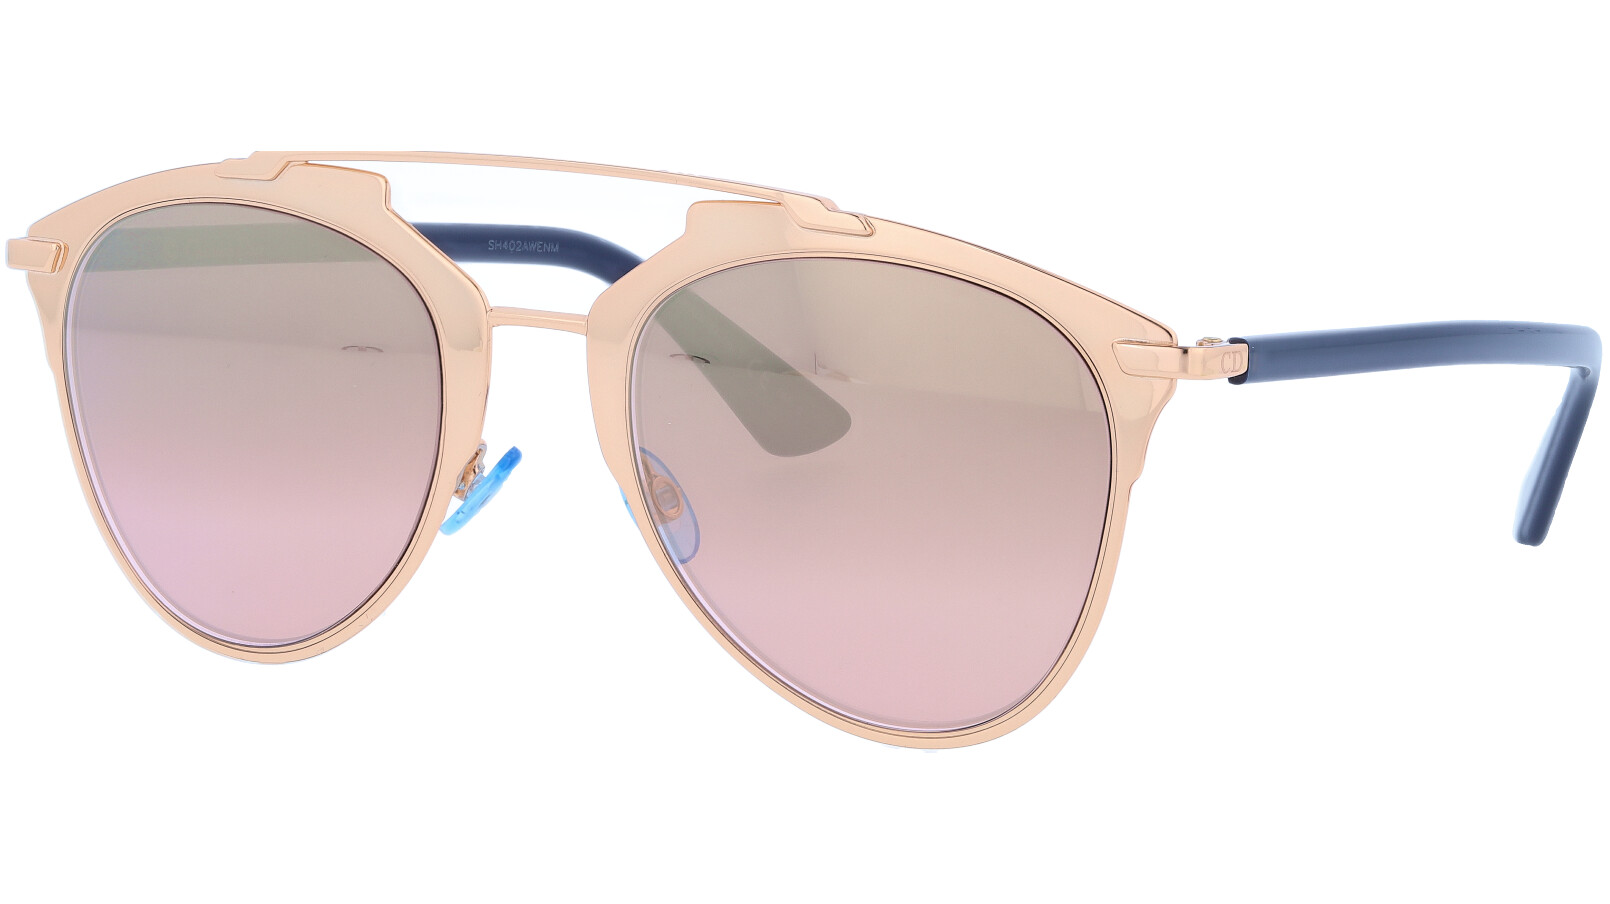 DIOR DIORREFLECTED 3210R 52 GDCPPR Sunglasses